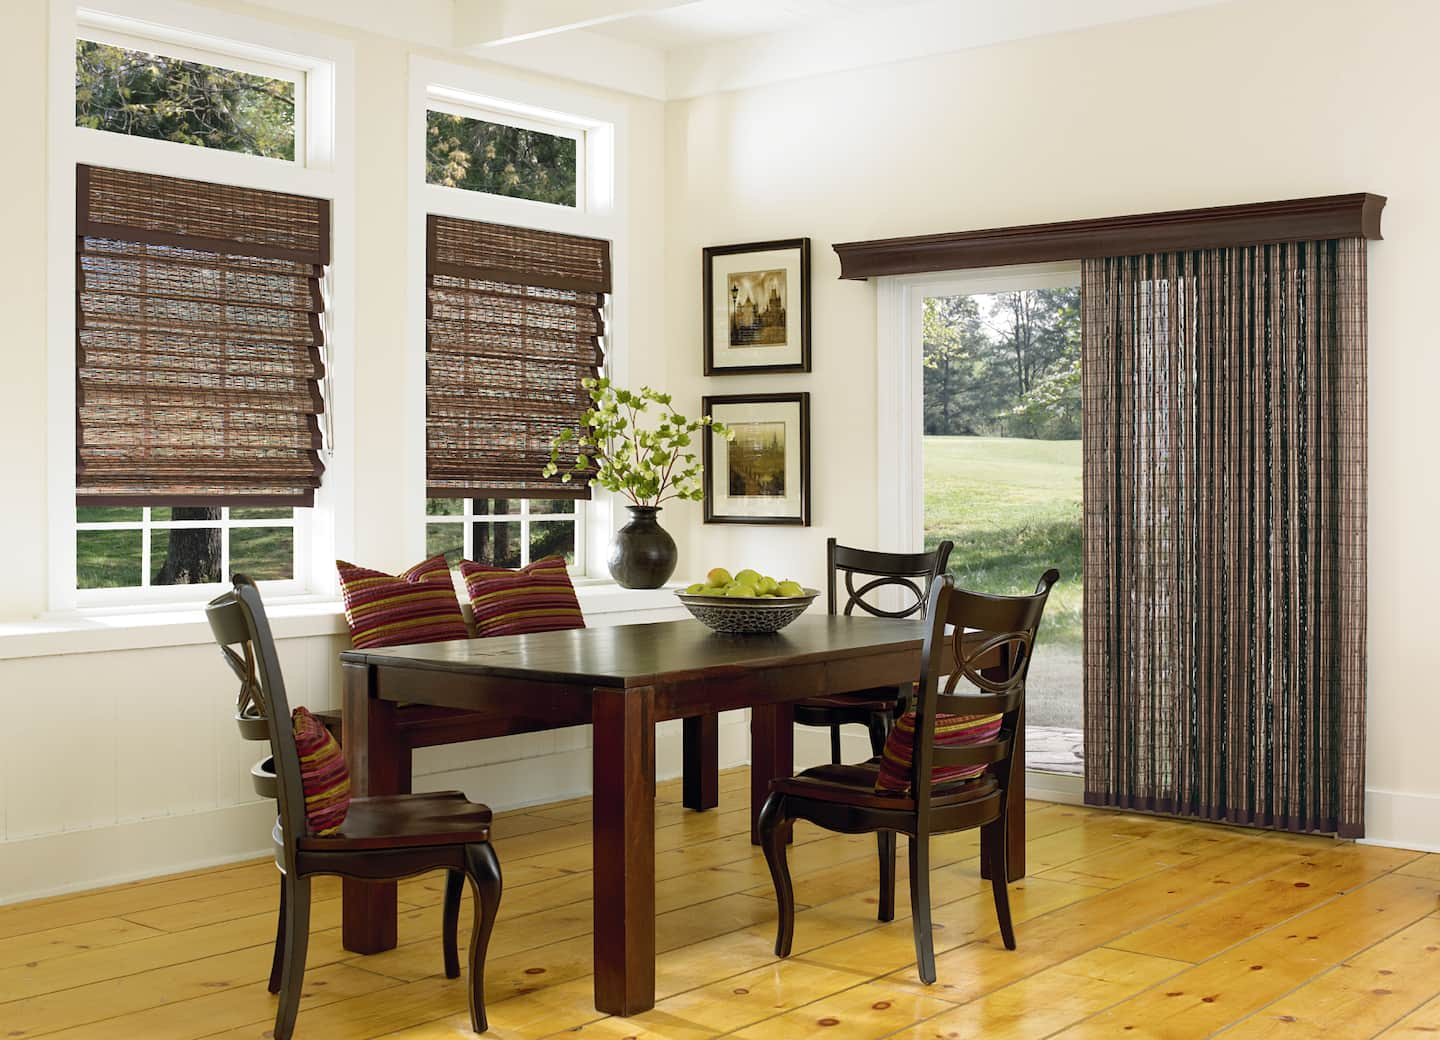 15 ideas for dining room curtains | angie's list